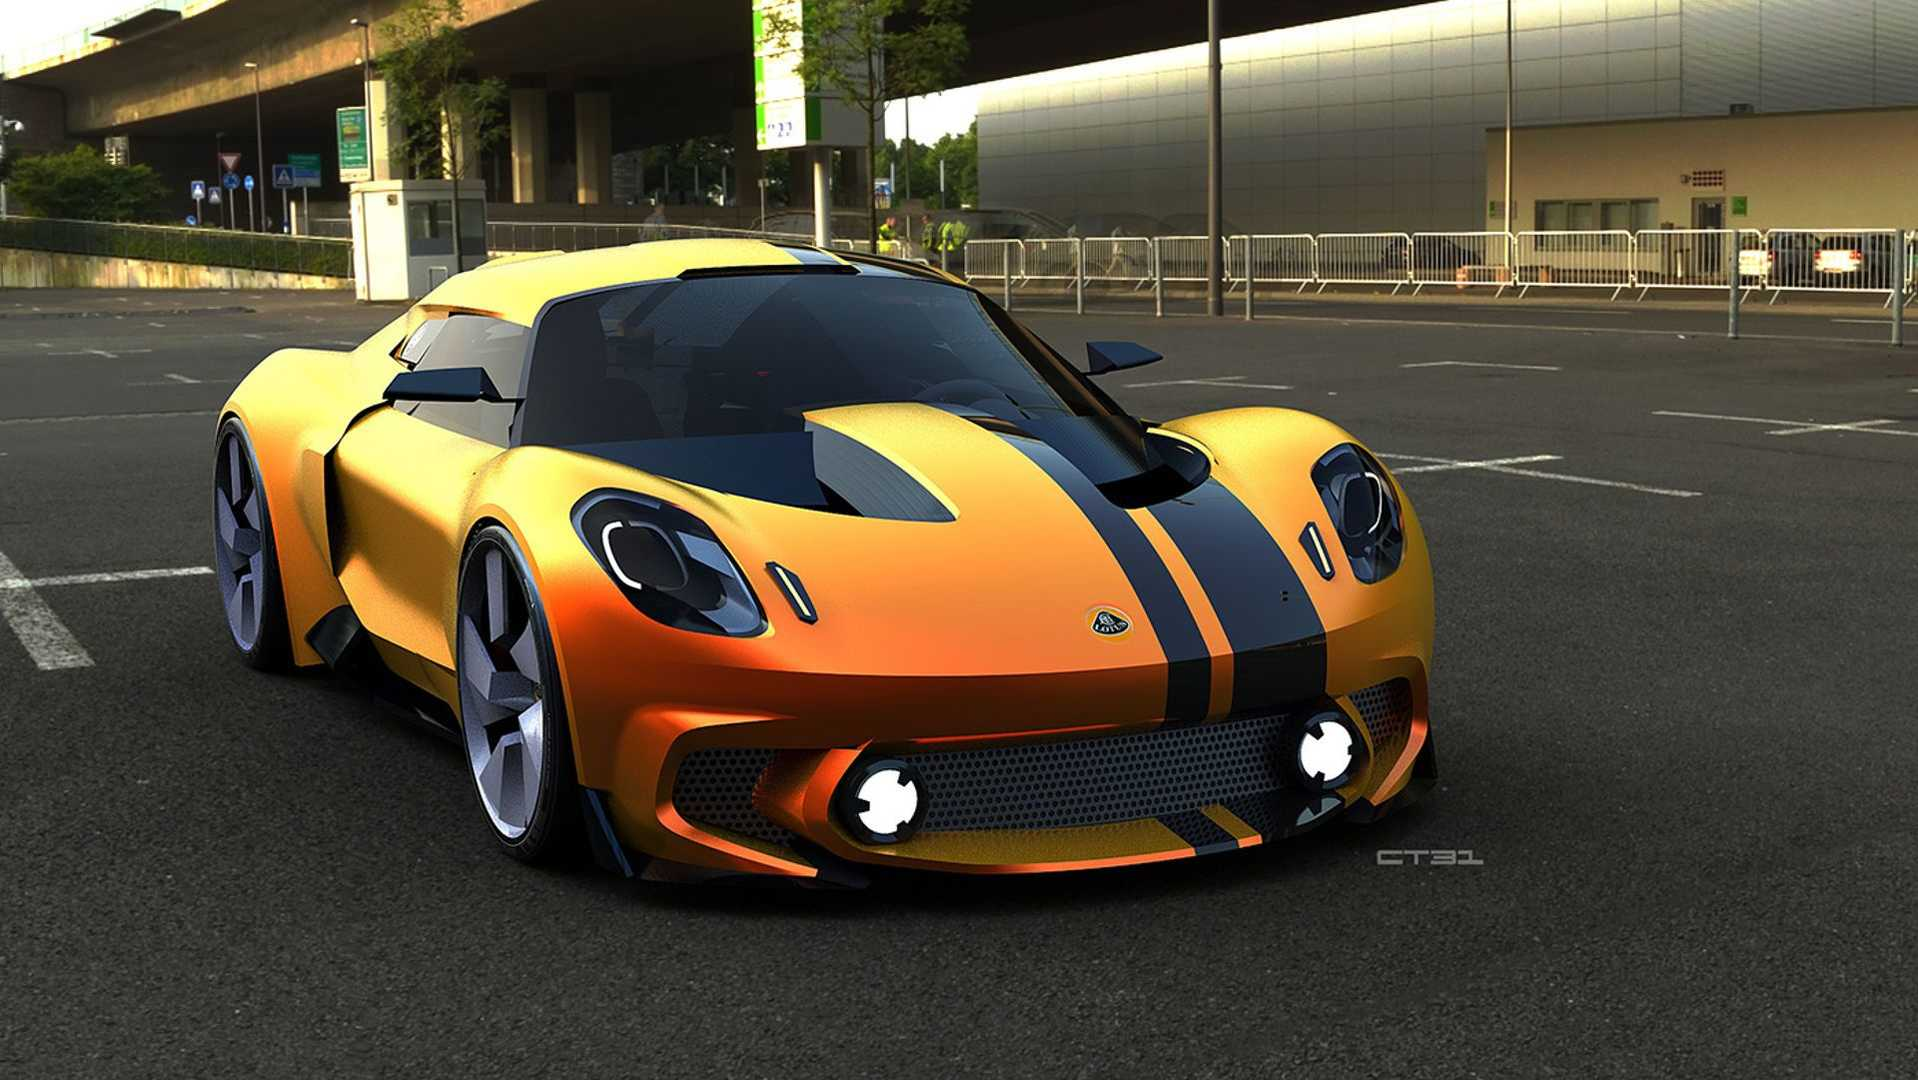 90 The Best 2020 Lotus Exige Images